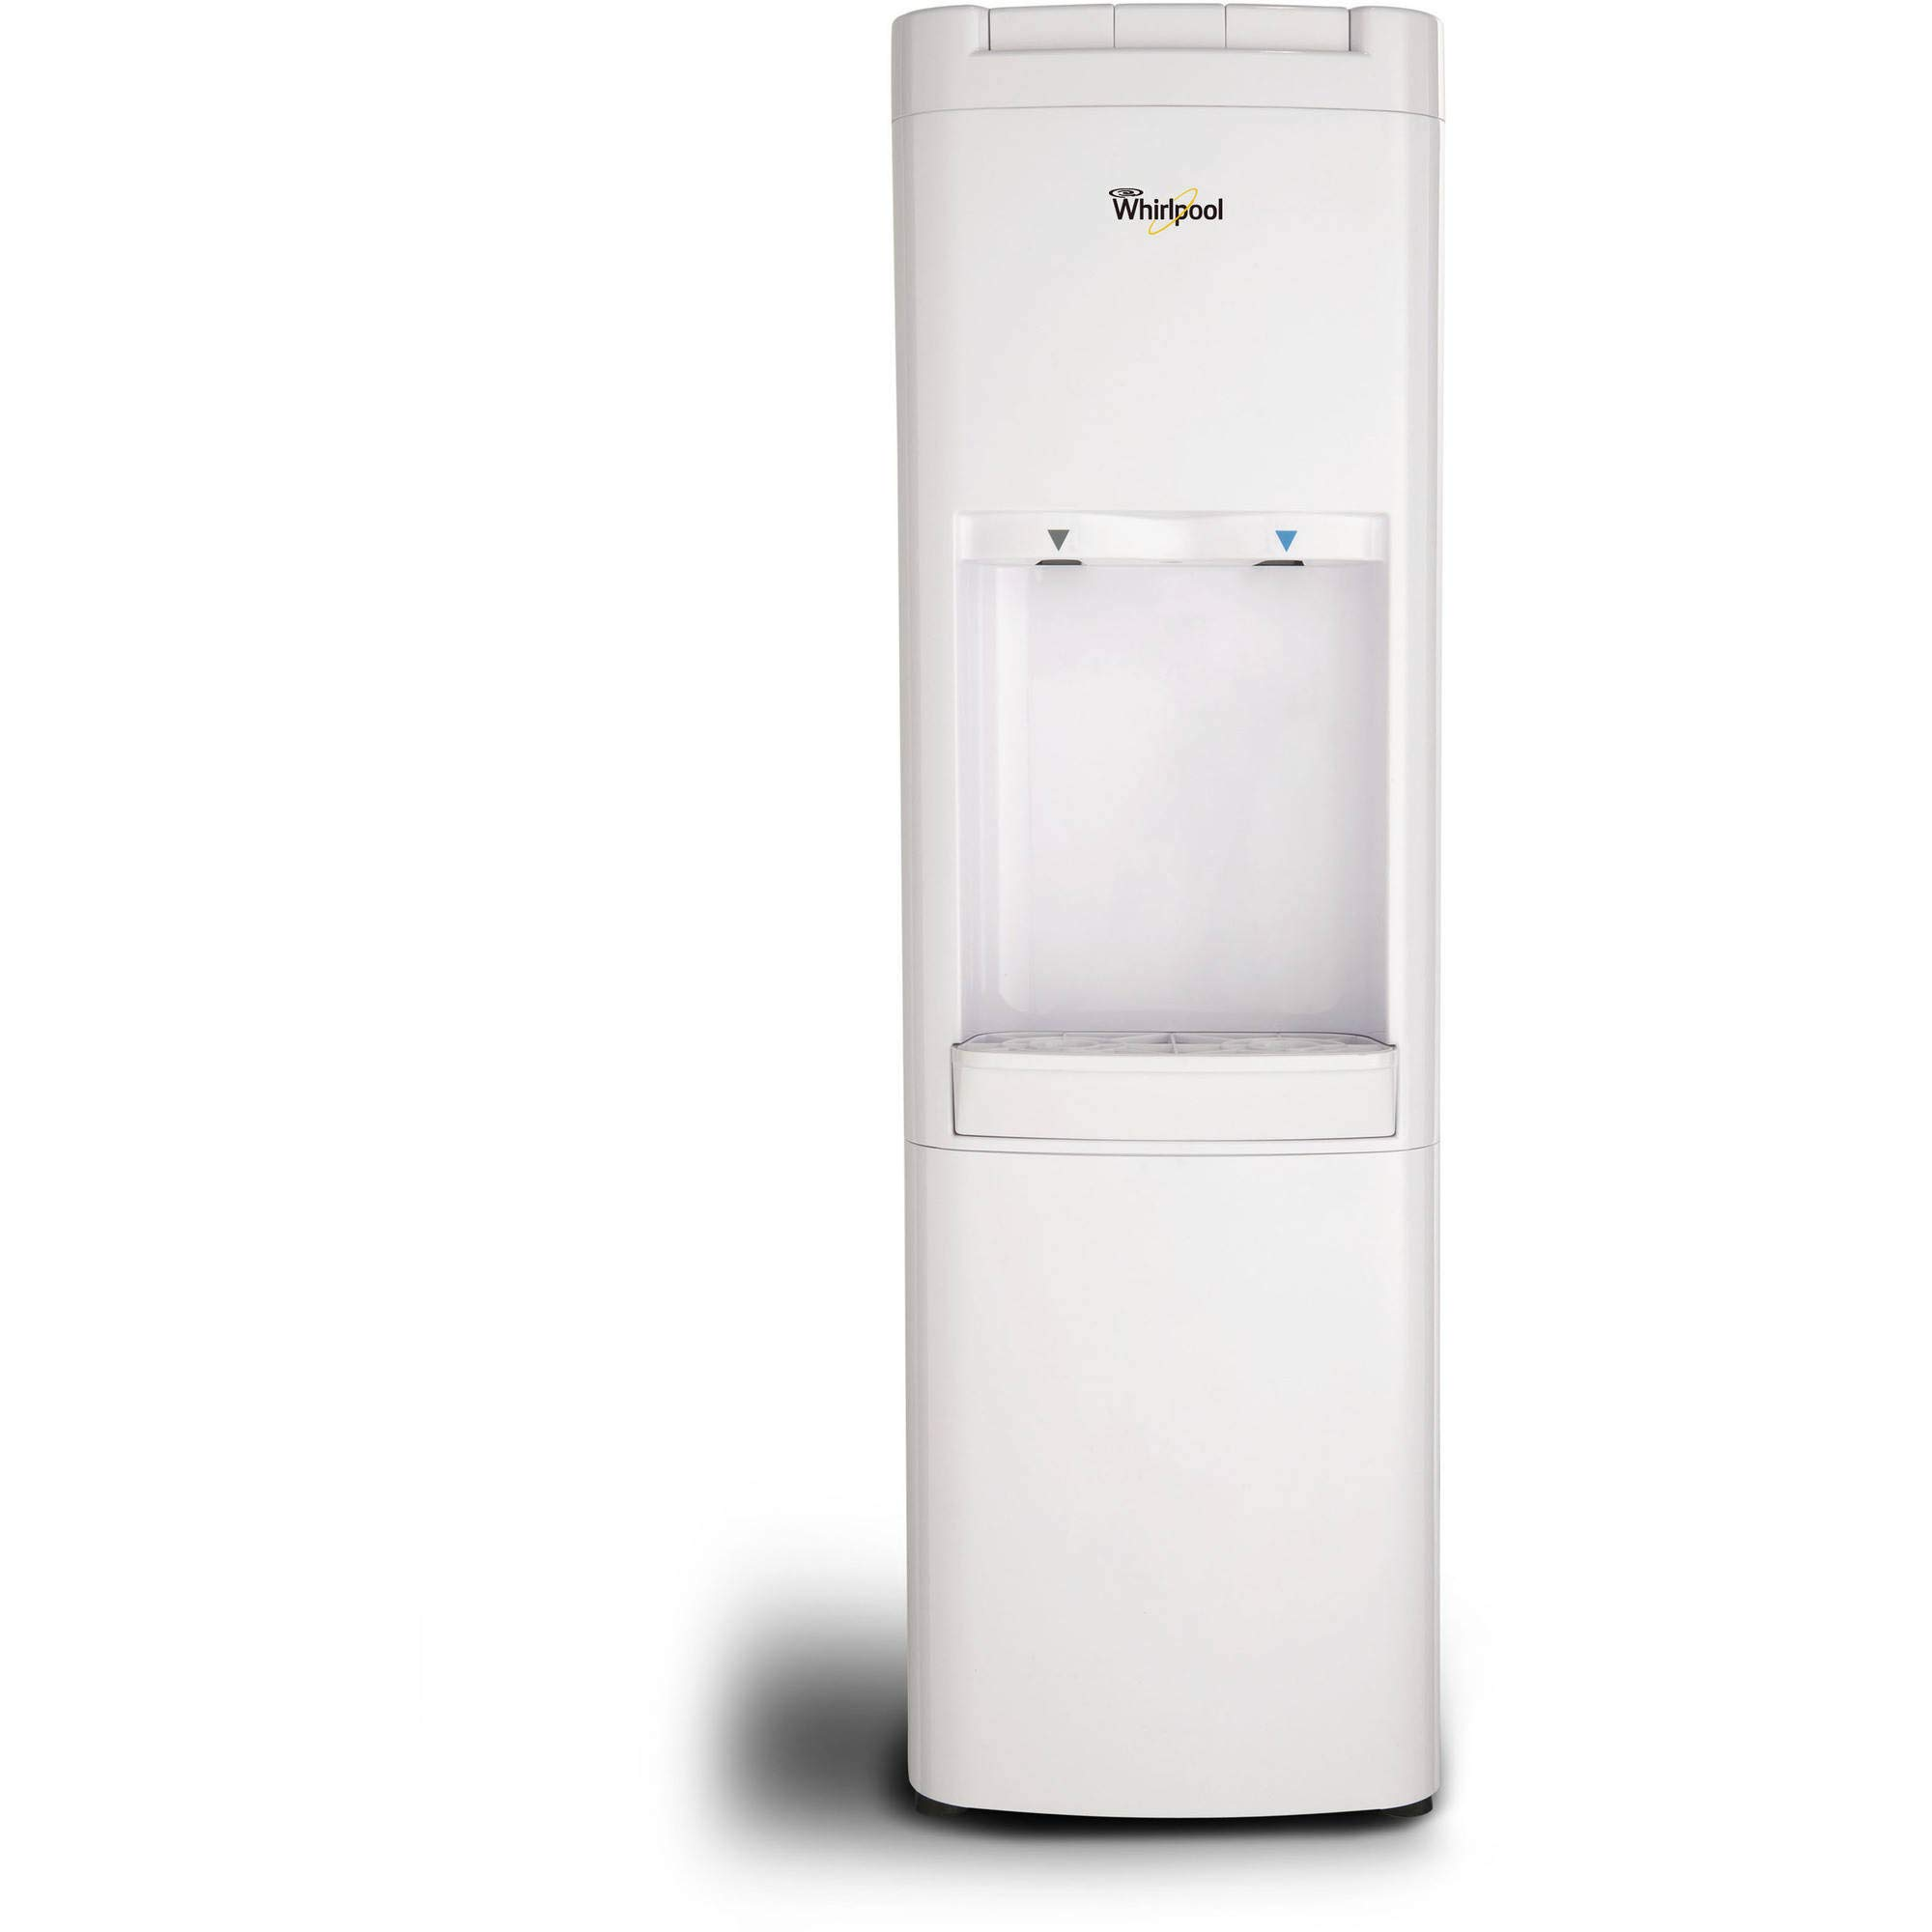 Whirlpool Commercial Water Cooler, Ice Chilled Water, White Water Dispenser by Whirlpool